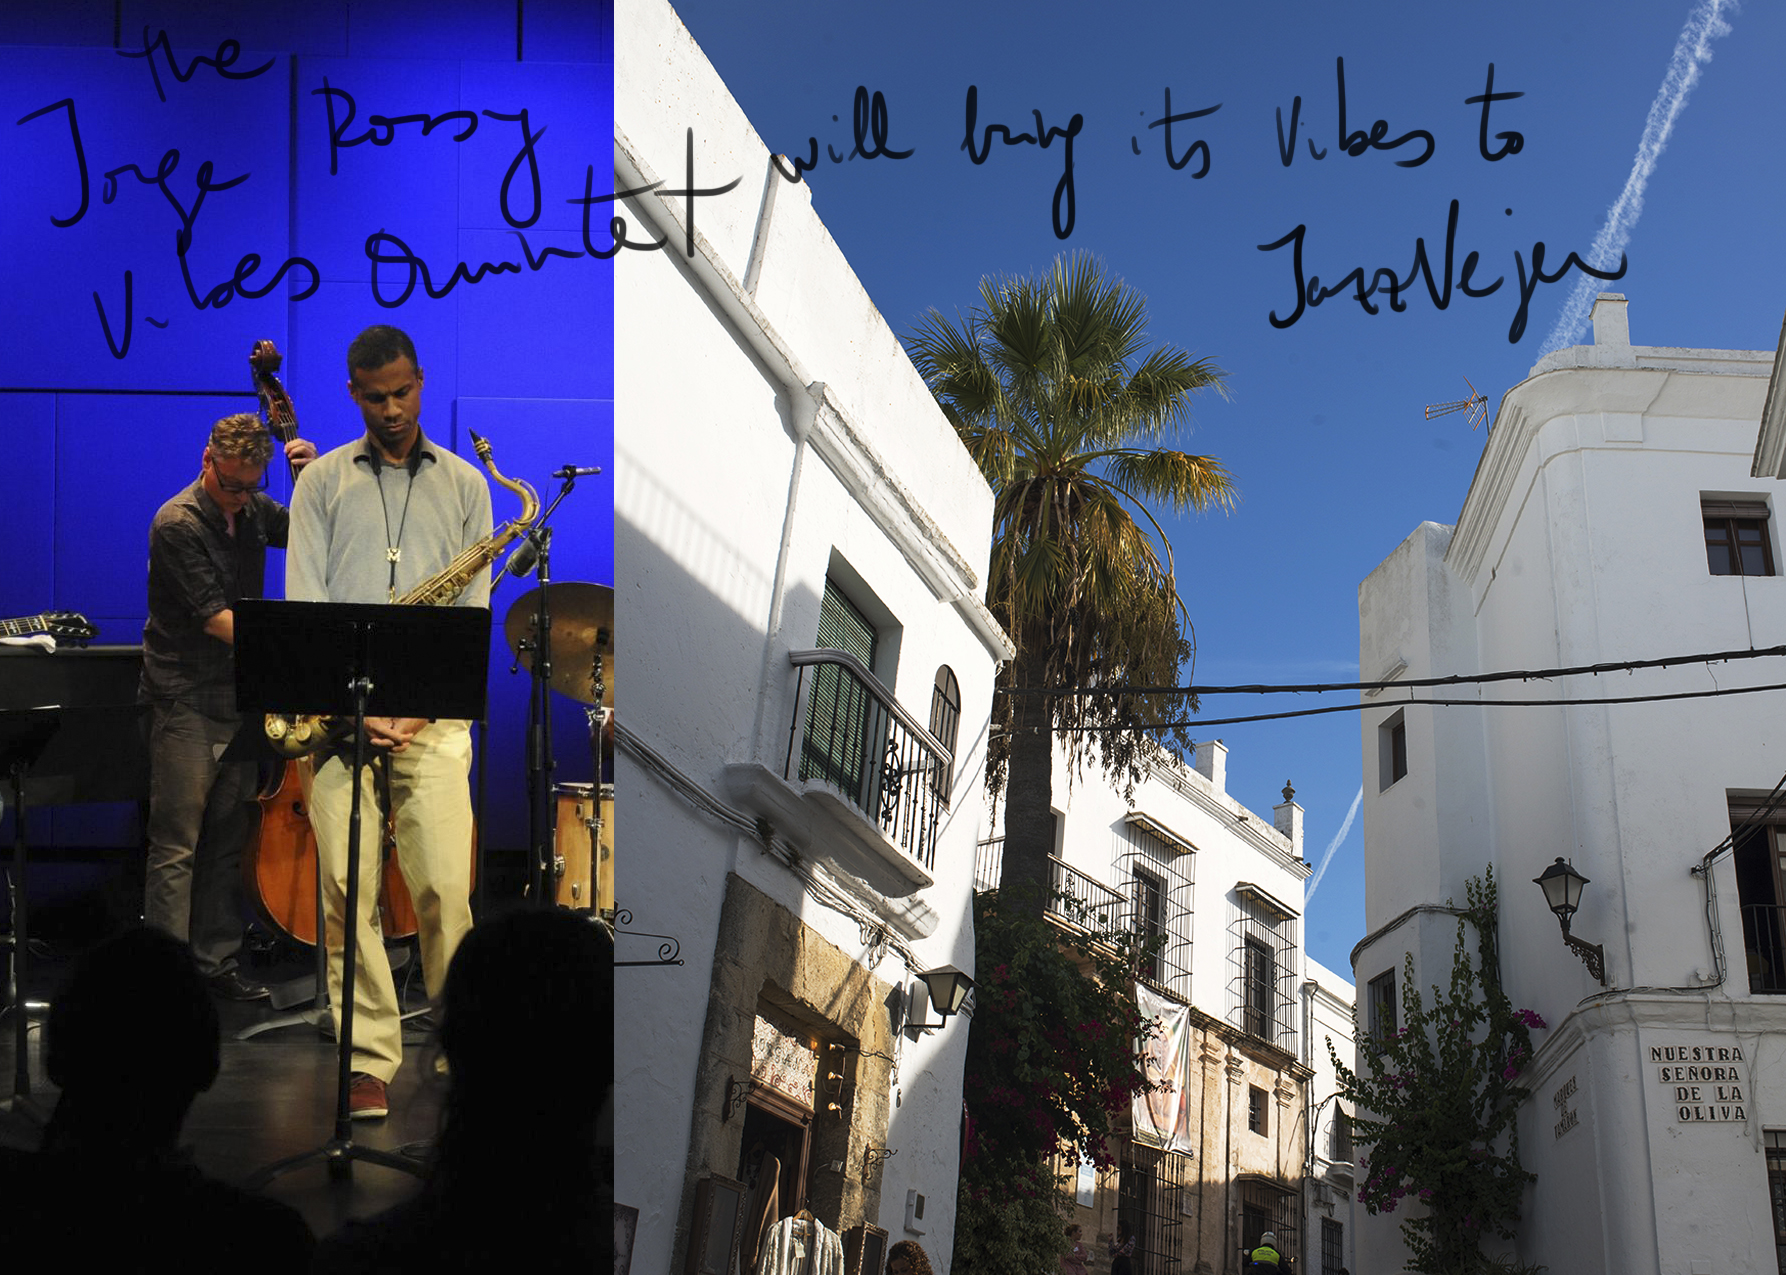 smartvolta-volta-smart-places-jazzvejer5